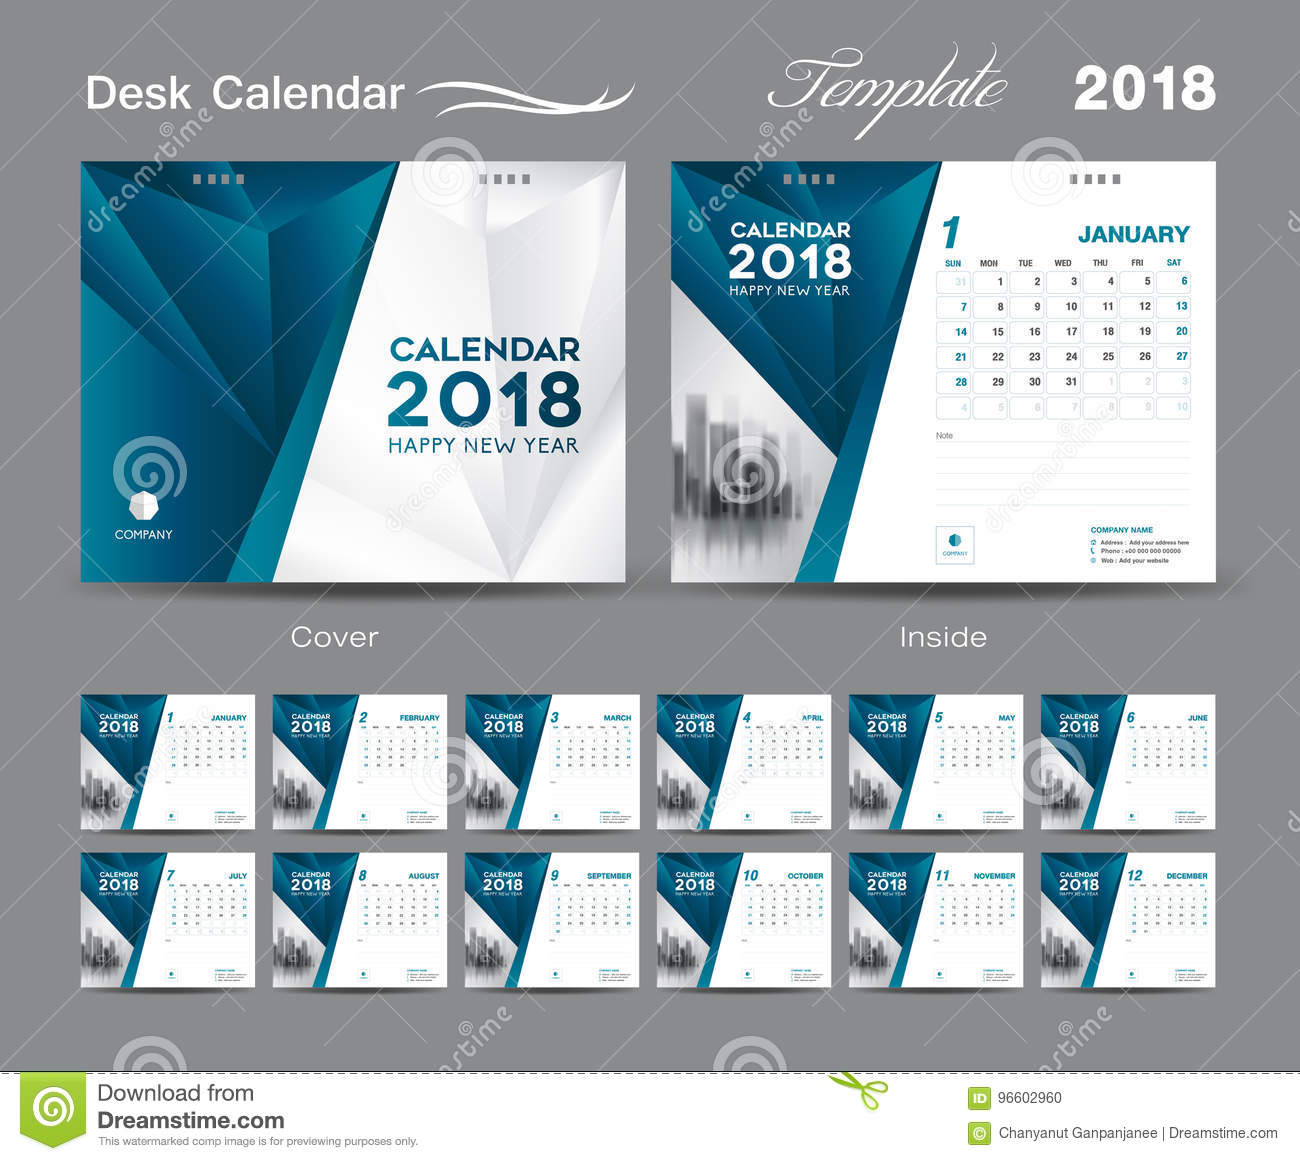 Calendar Cover Page Design : Desk calendar template layout design blue cover set